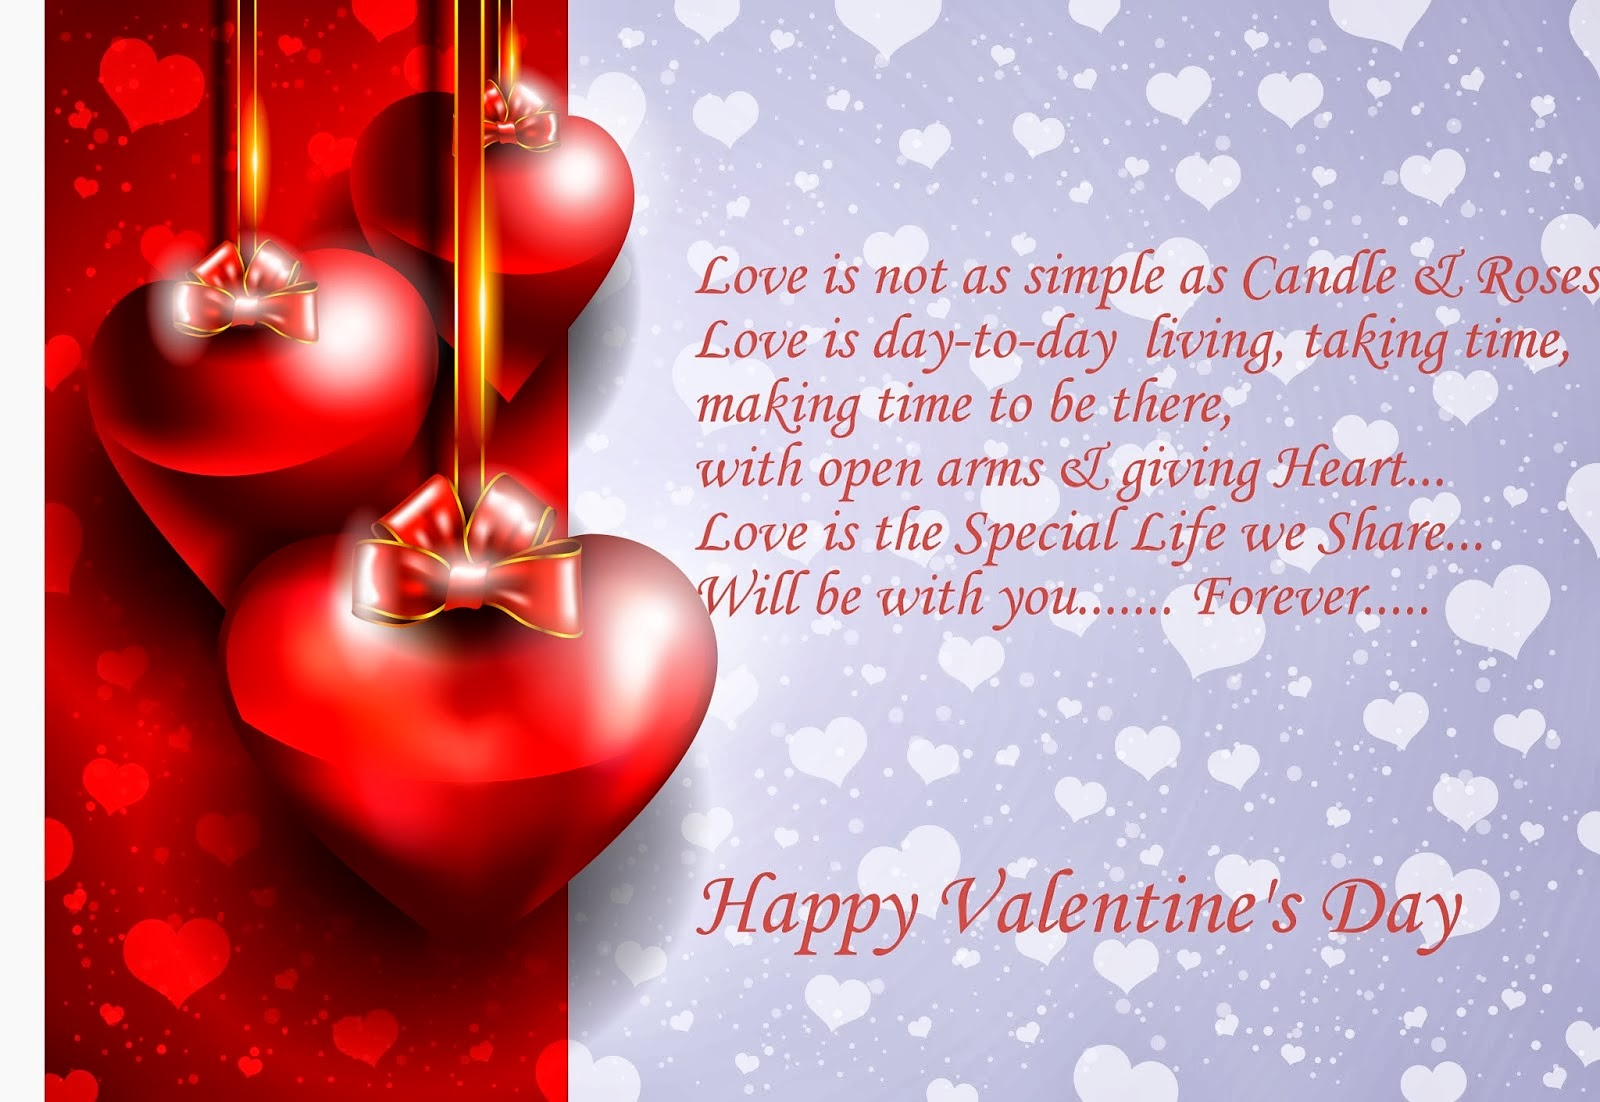 Download hd wallpapers of simple life quote free download high - Here Is The Collection Of Best Valentine S Day 2014 Hd Wallpaper Click And Download This High Defination Wallpaper For Free